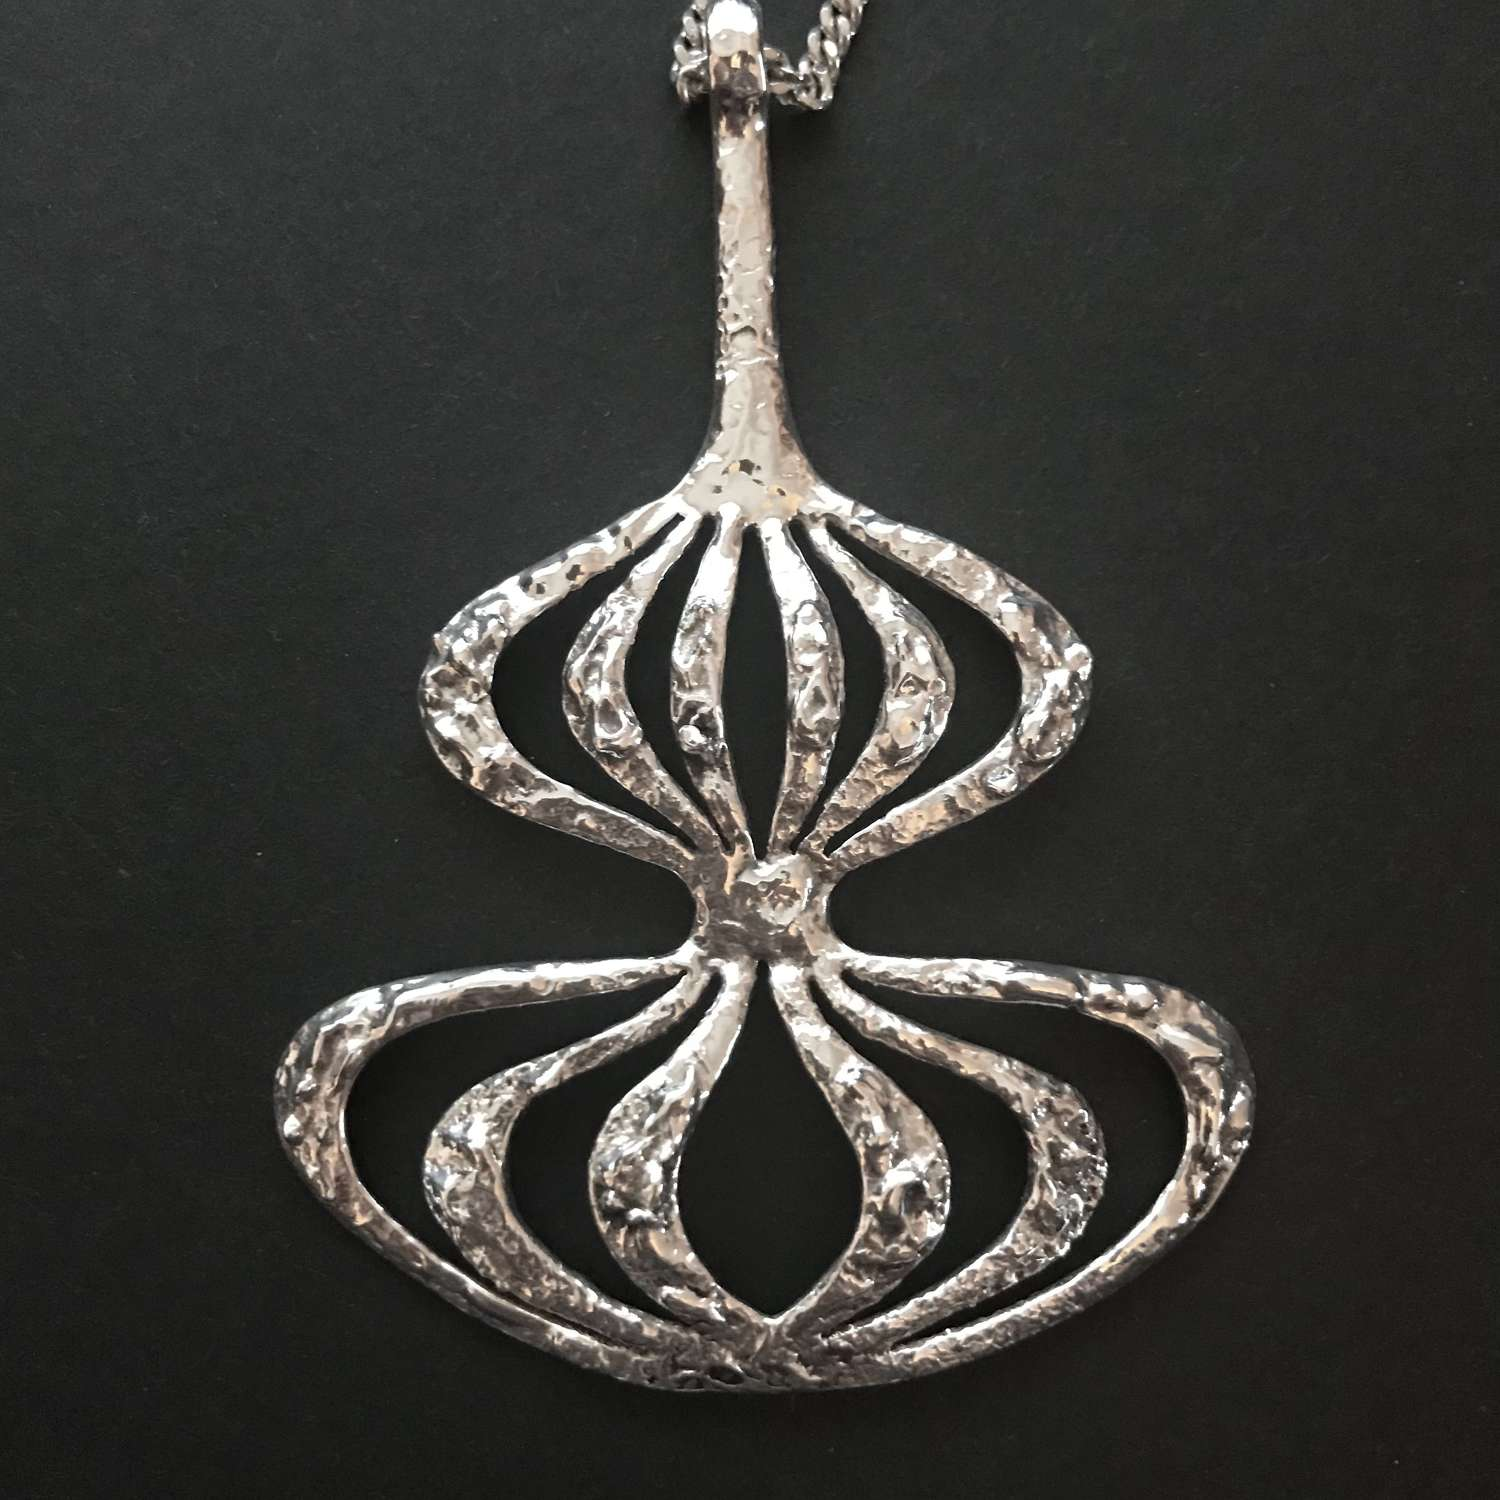 Silver pendant by Theresia Hvorslev for Mema, Lidköping, Sweden 1972